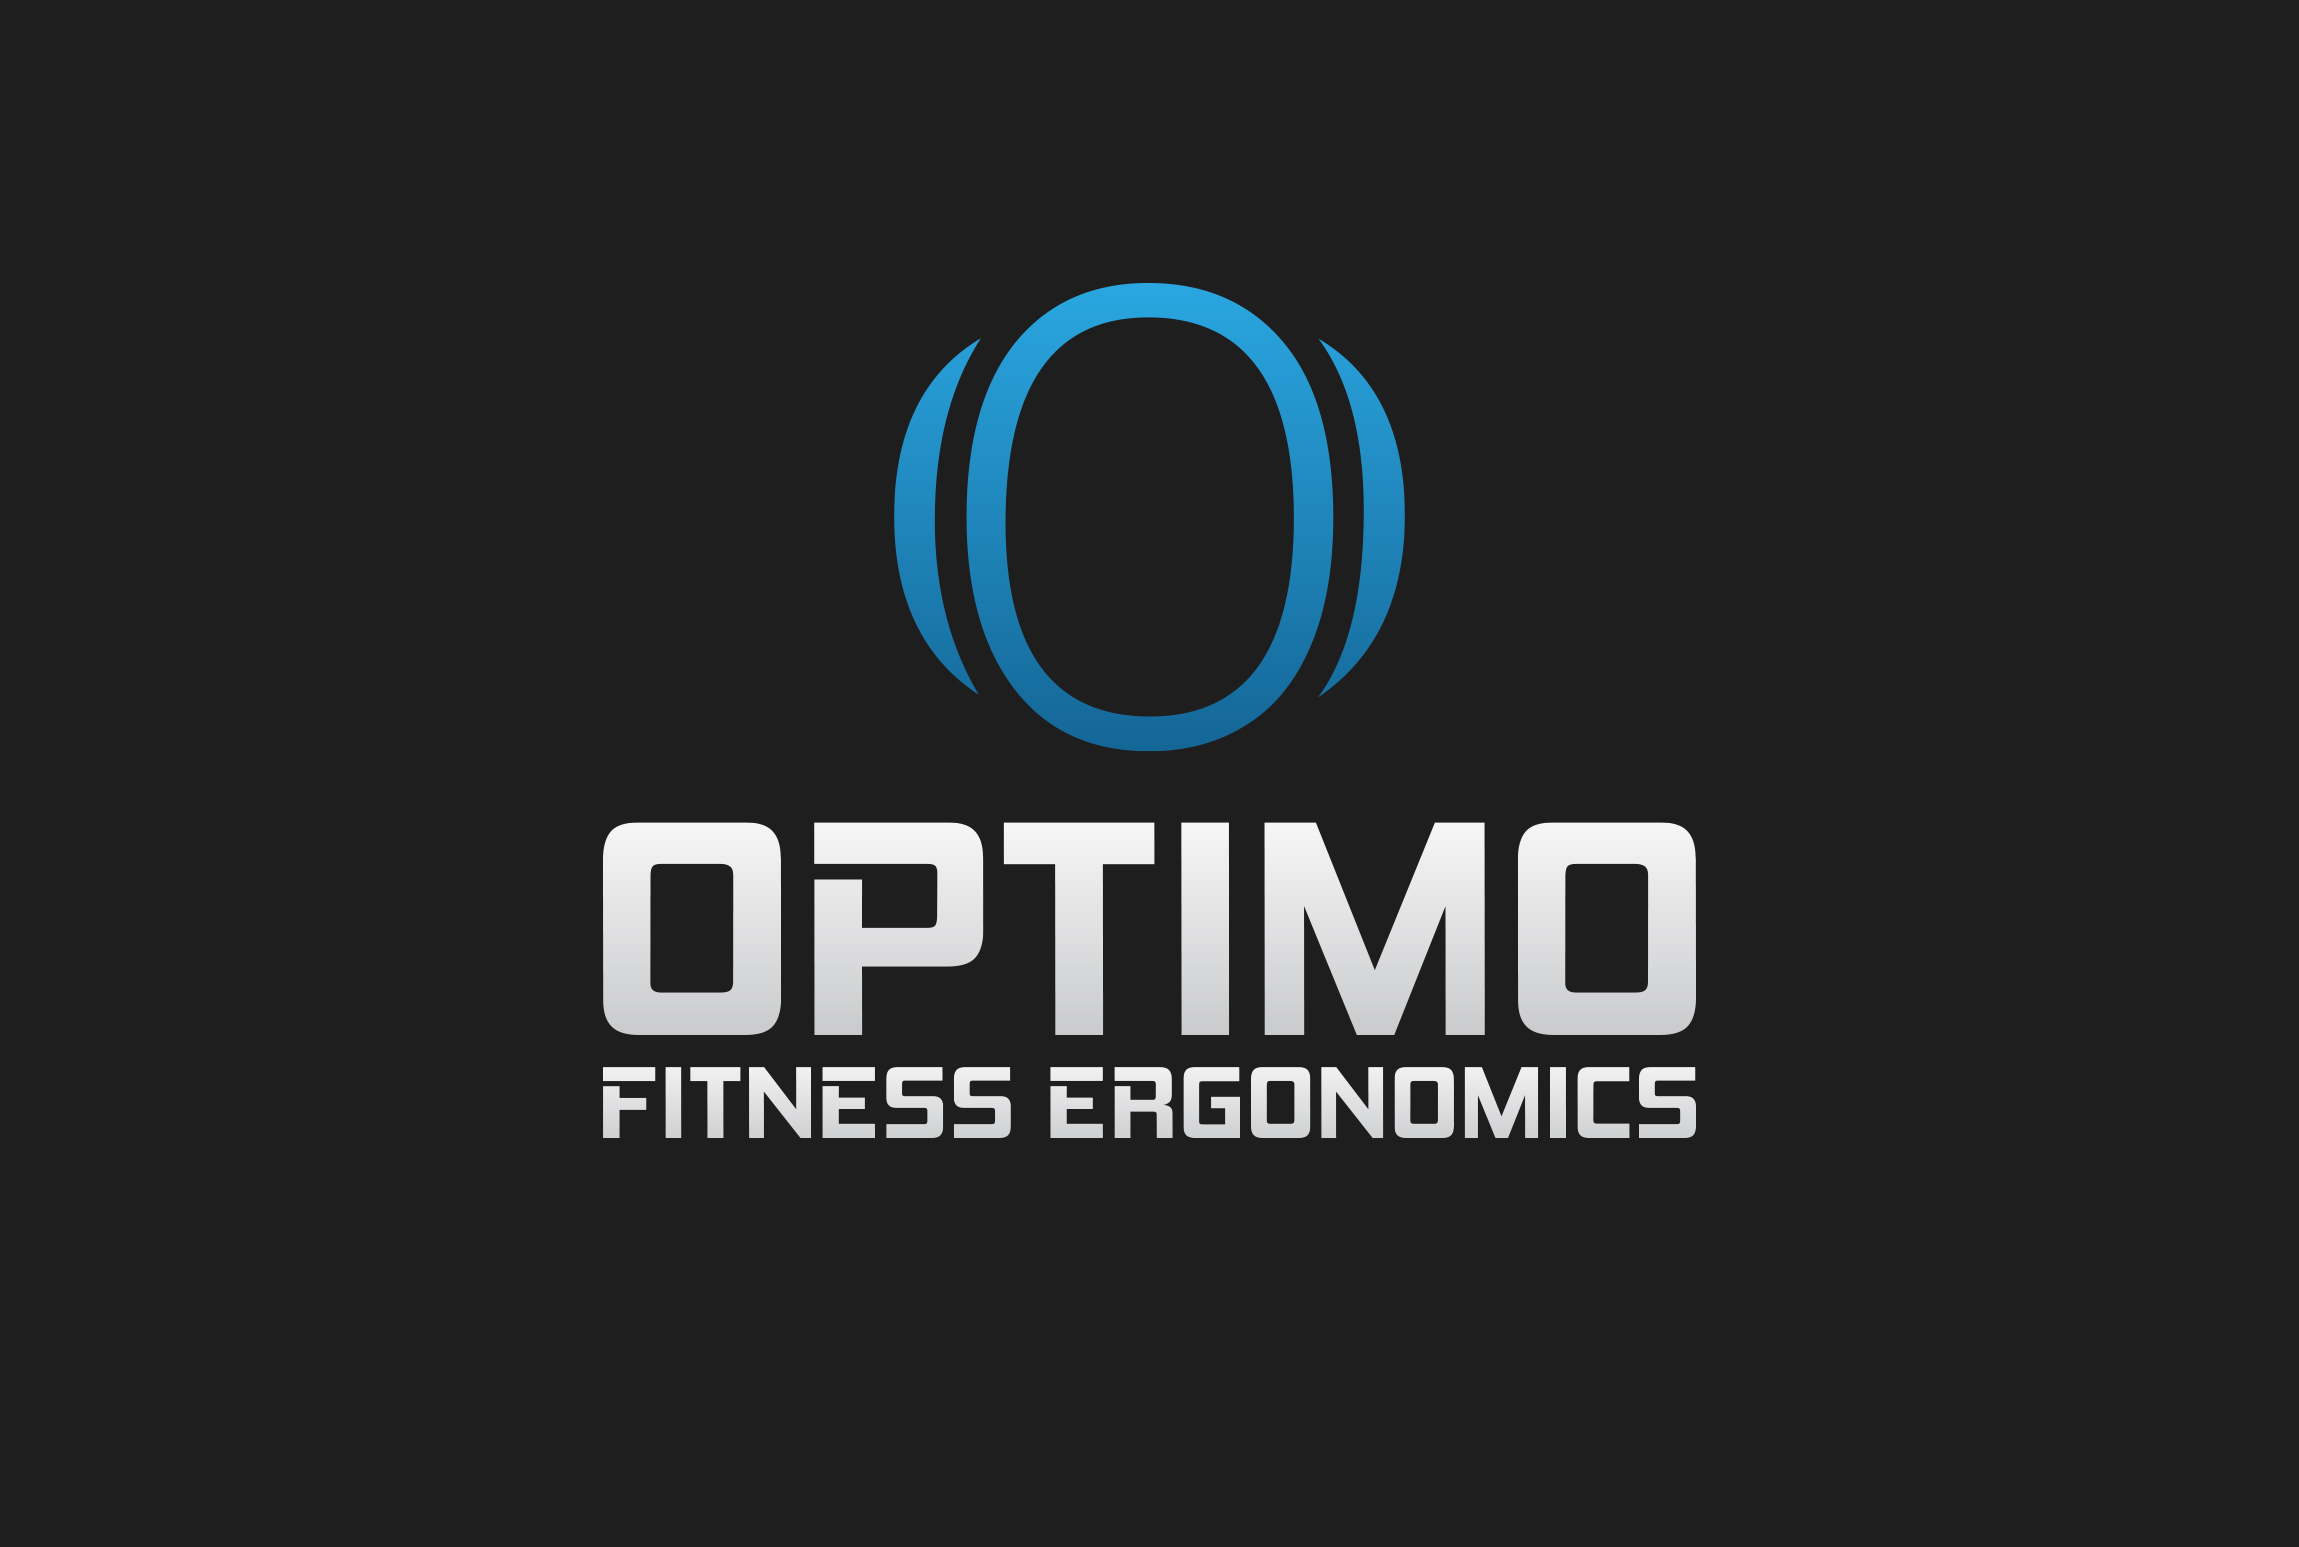 Optimo Fitness Ergonomics Inc.